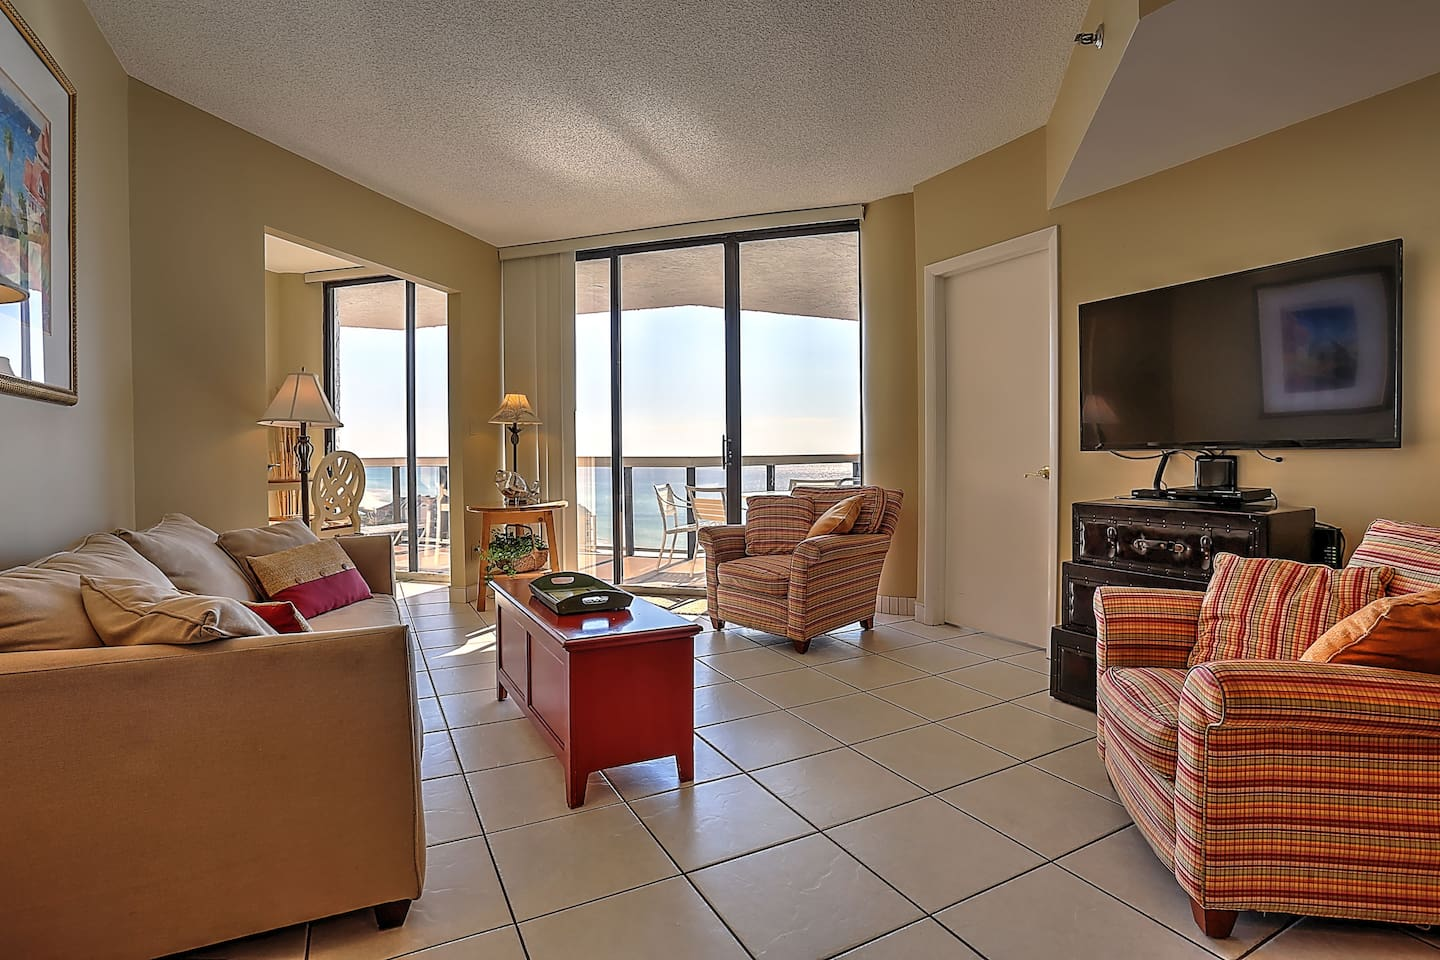 Wonderful views from every room.  Large living space includes sleeper sofa, flat screen with streaming capabilities via smart bluetooth player, and large dining room table.